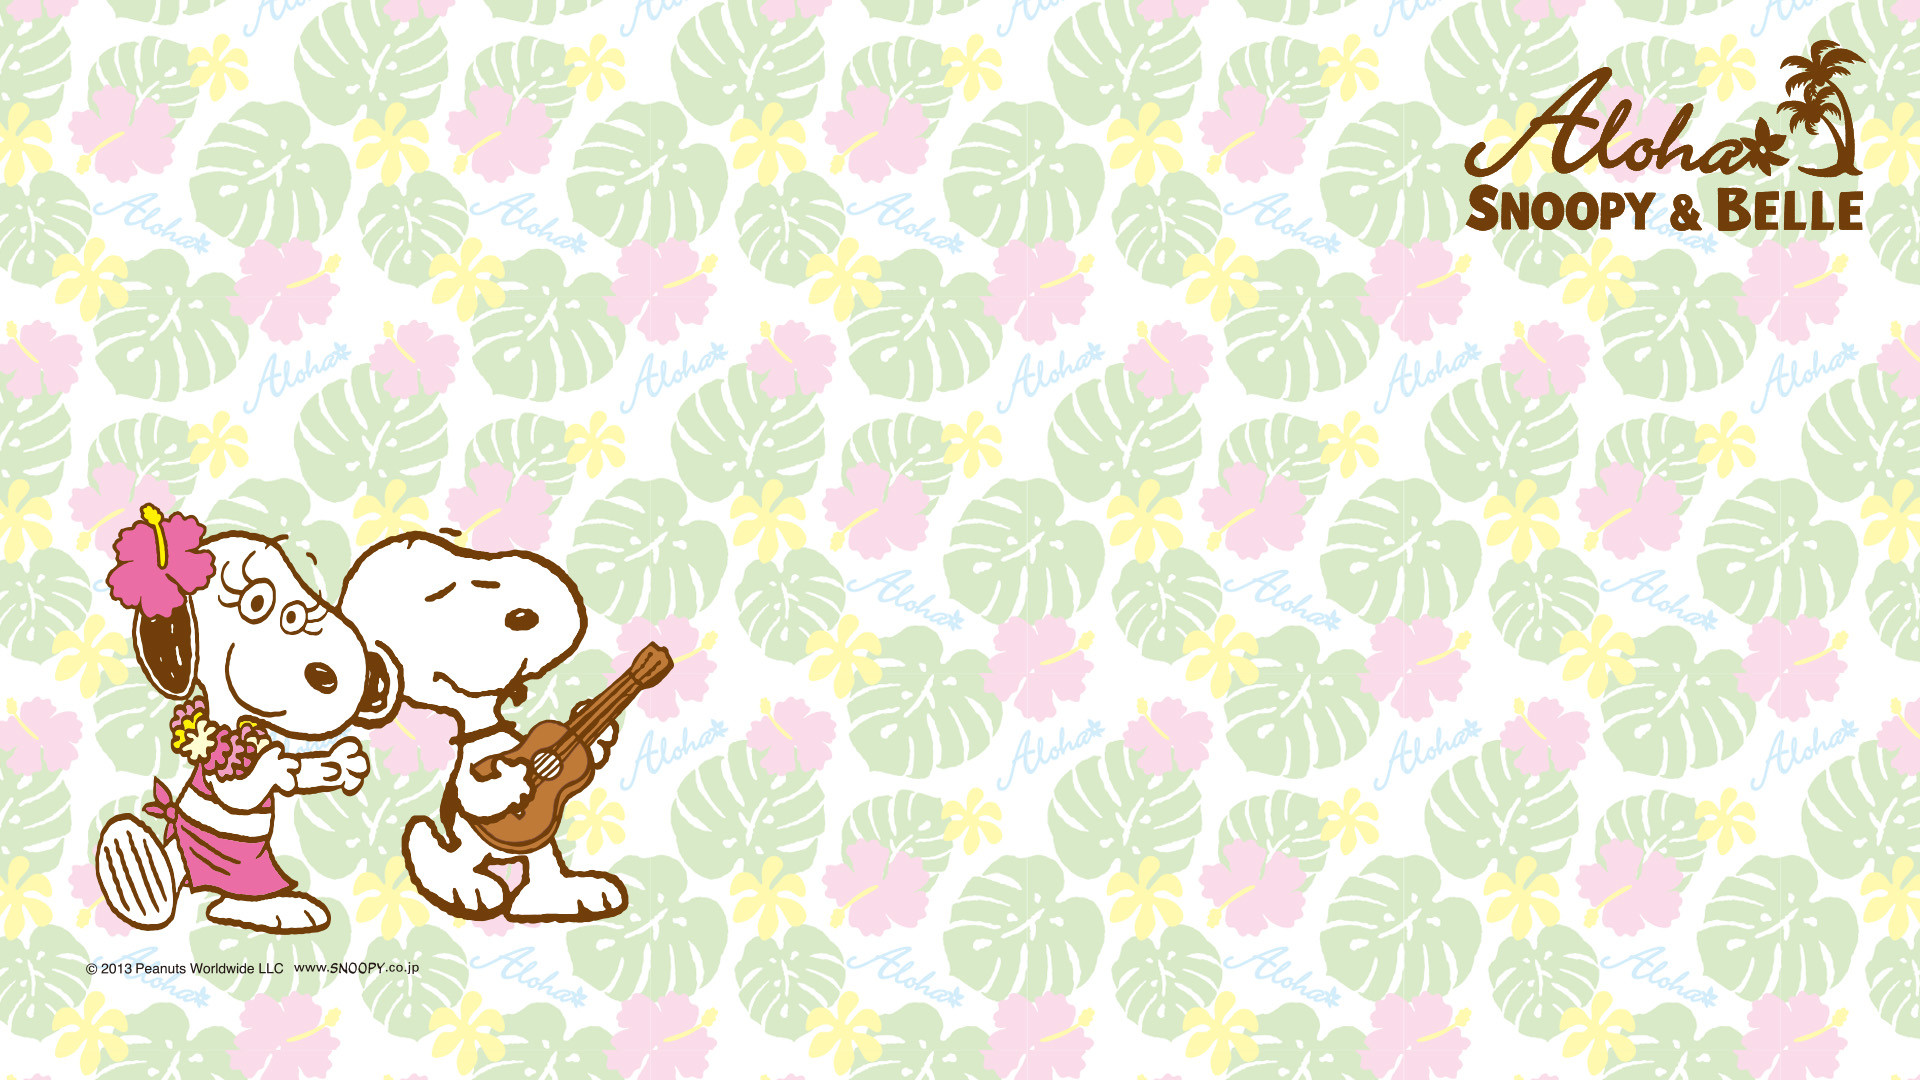 1920x1080 Aloha Snoopy and Belle